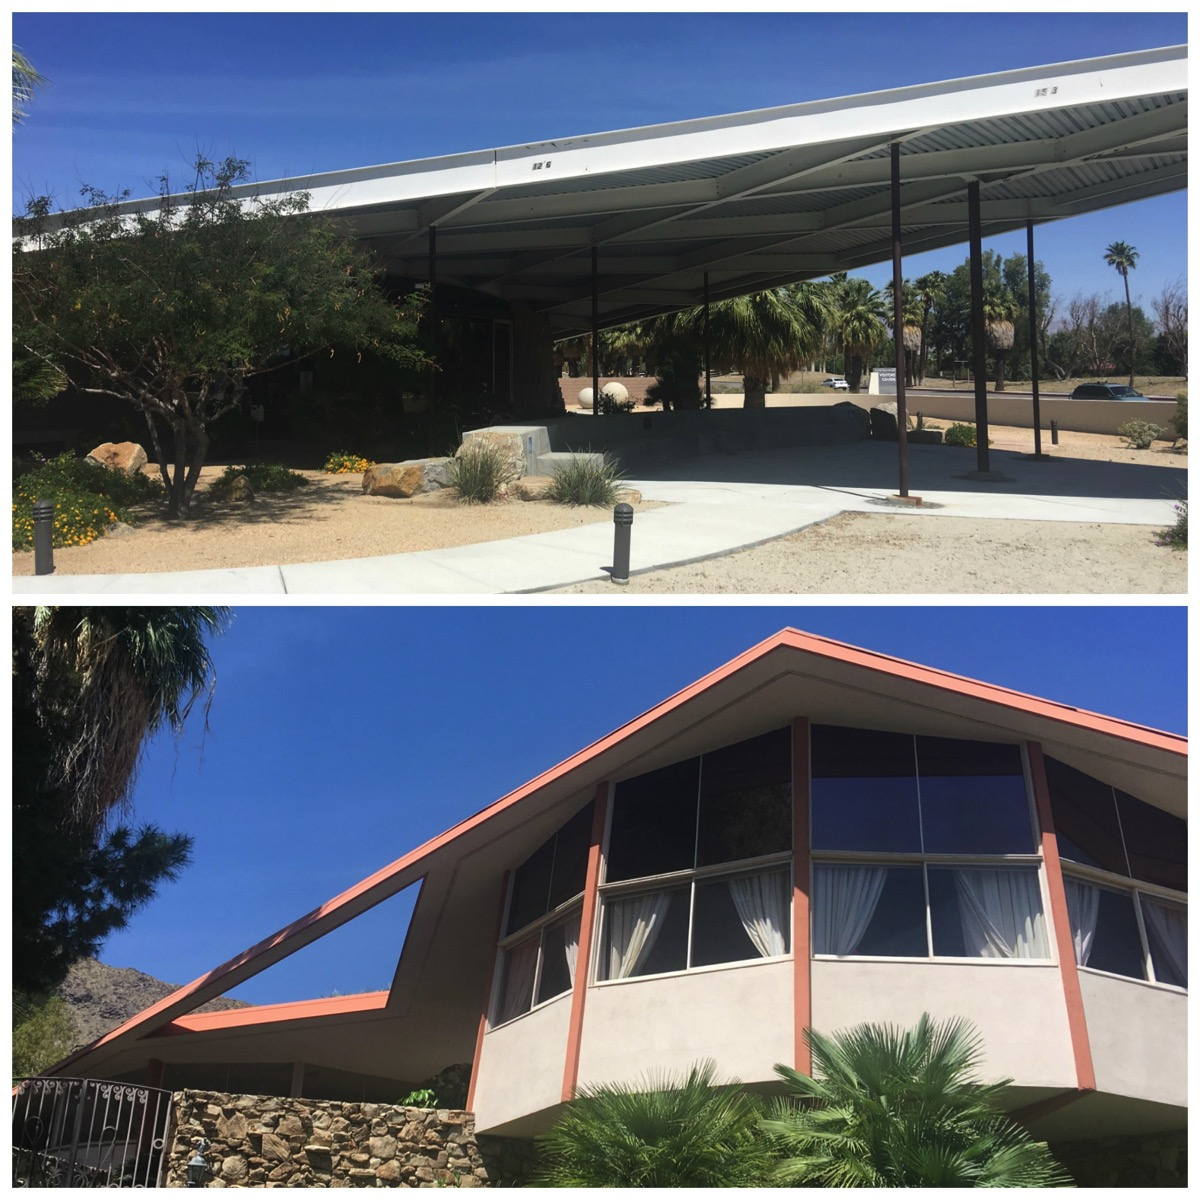 Elvis honeymoon mid century modern home palm springs